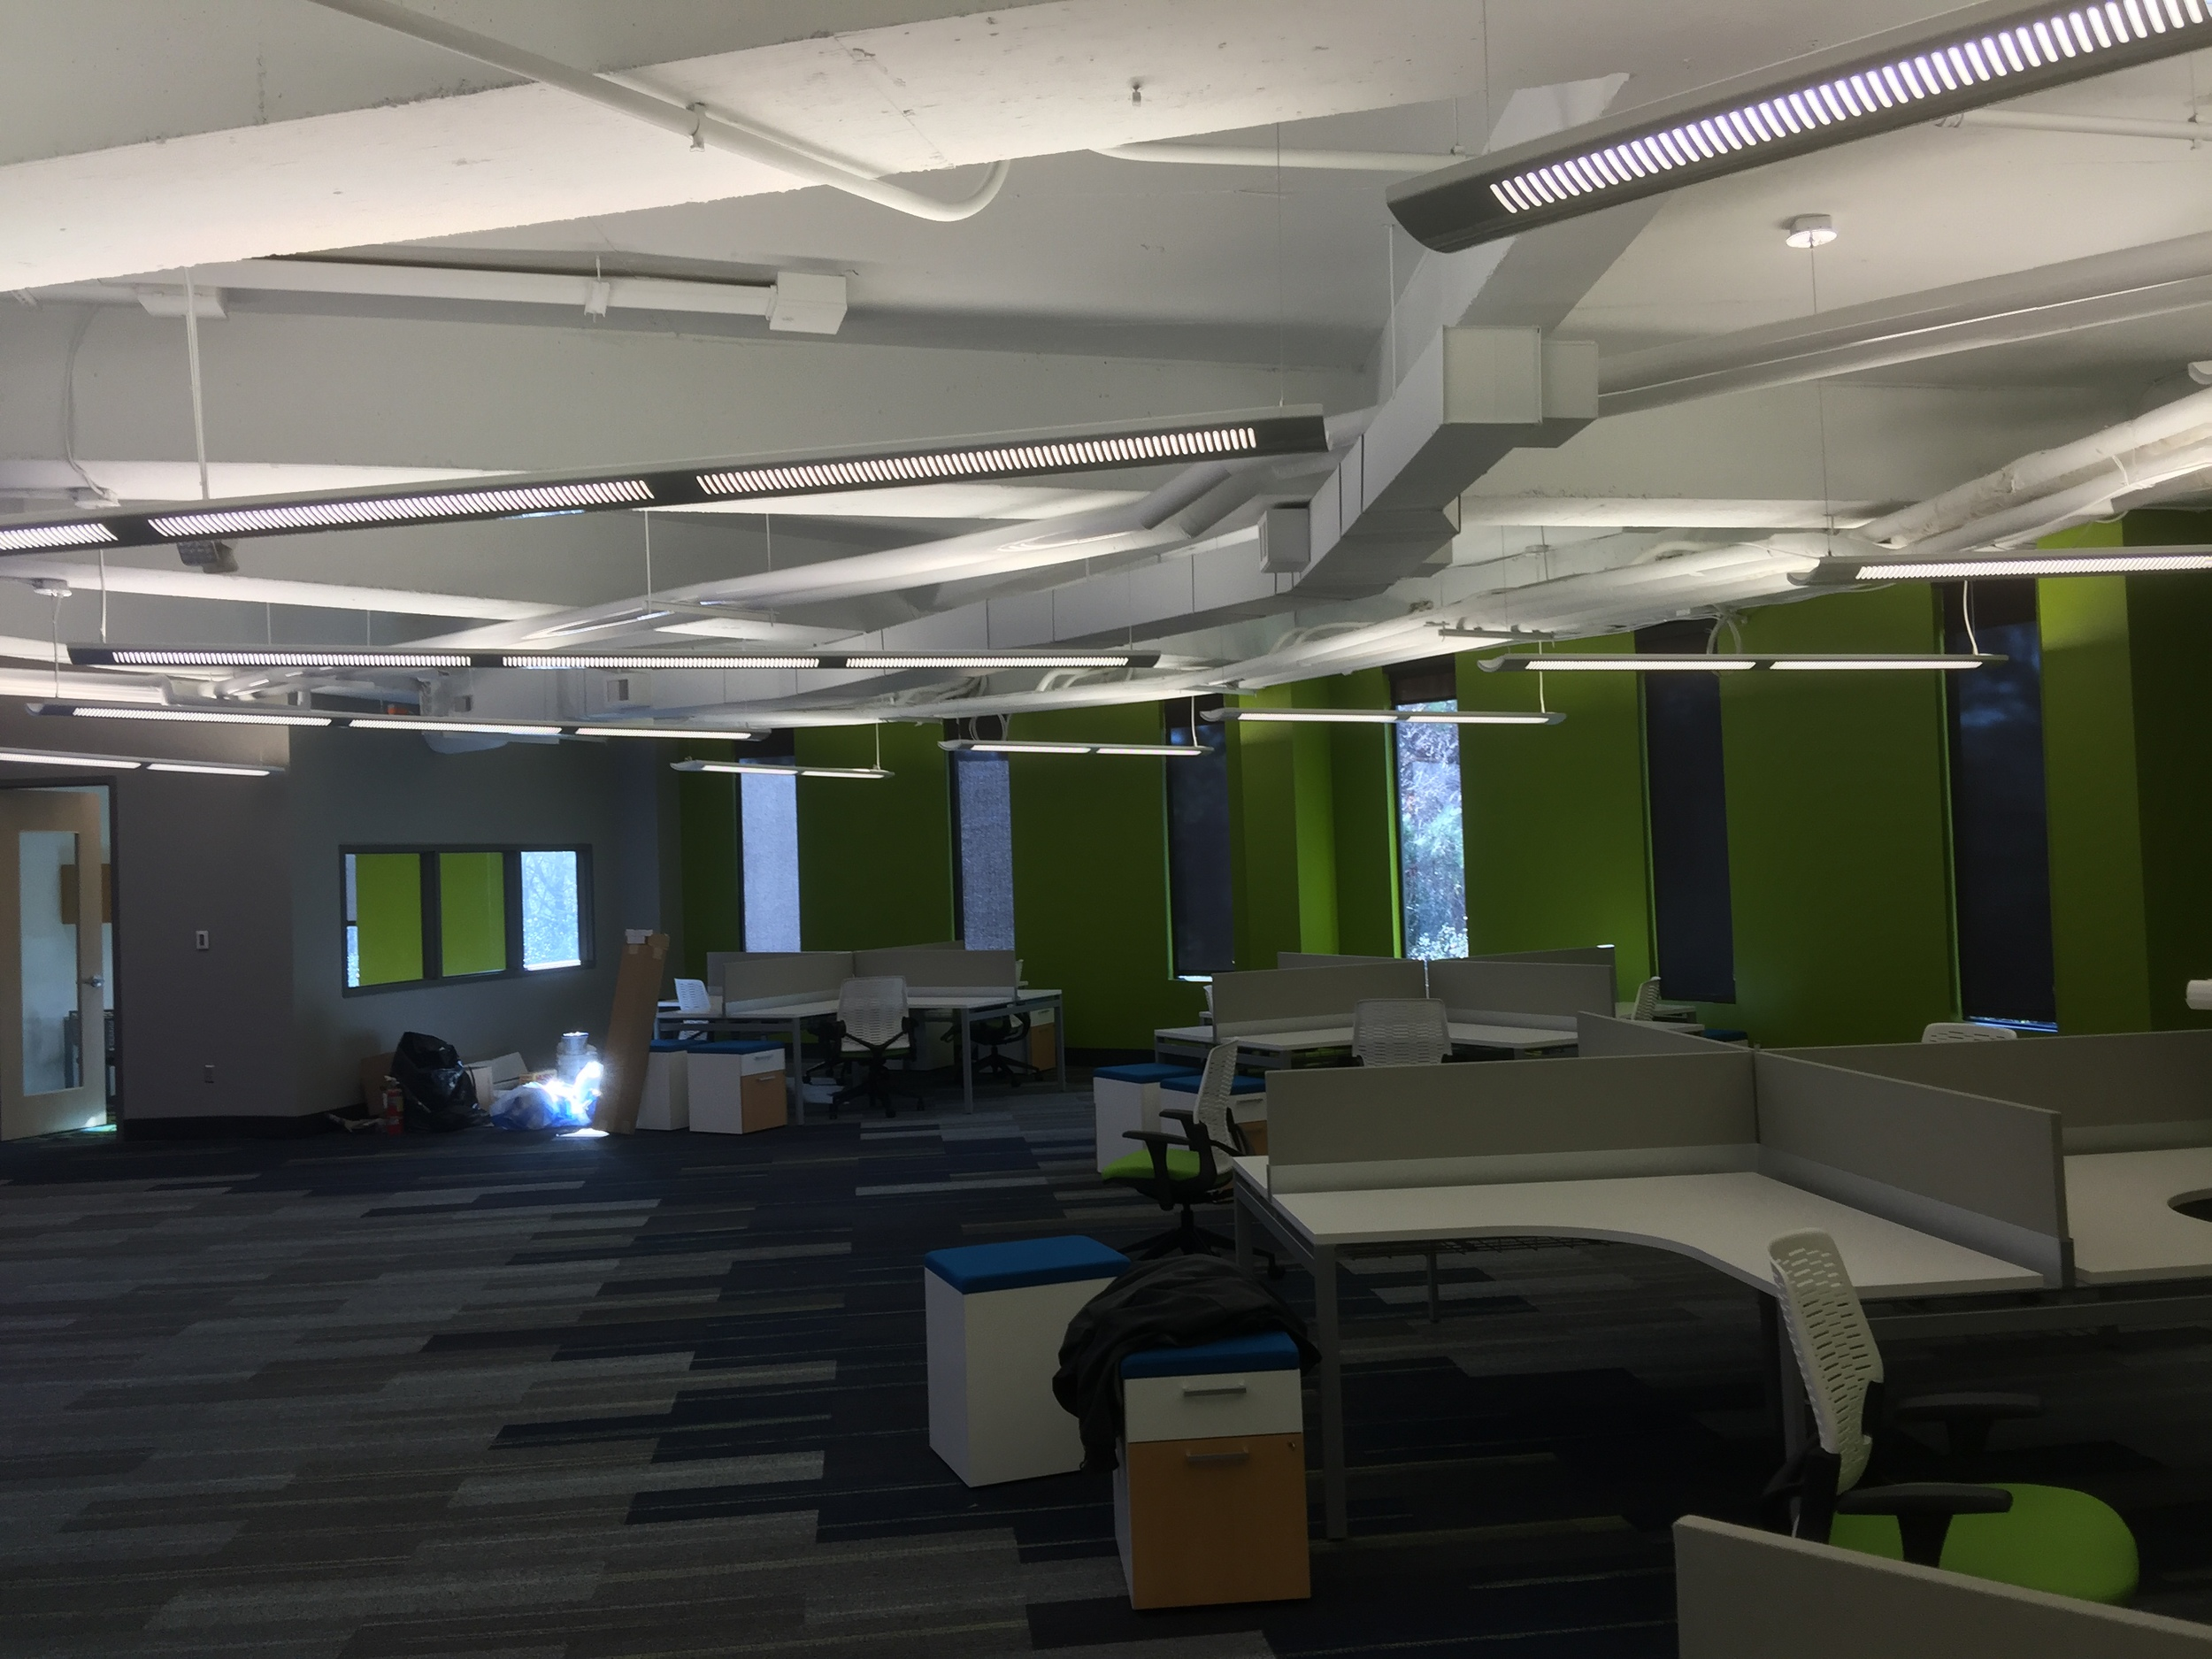 Strong Automotive's office space.....urban and simple. Lighting is clean and not too bright as it bounces off the white ceiling. This is a great work space.